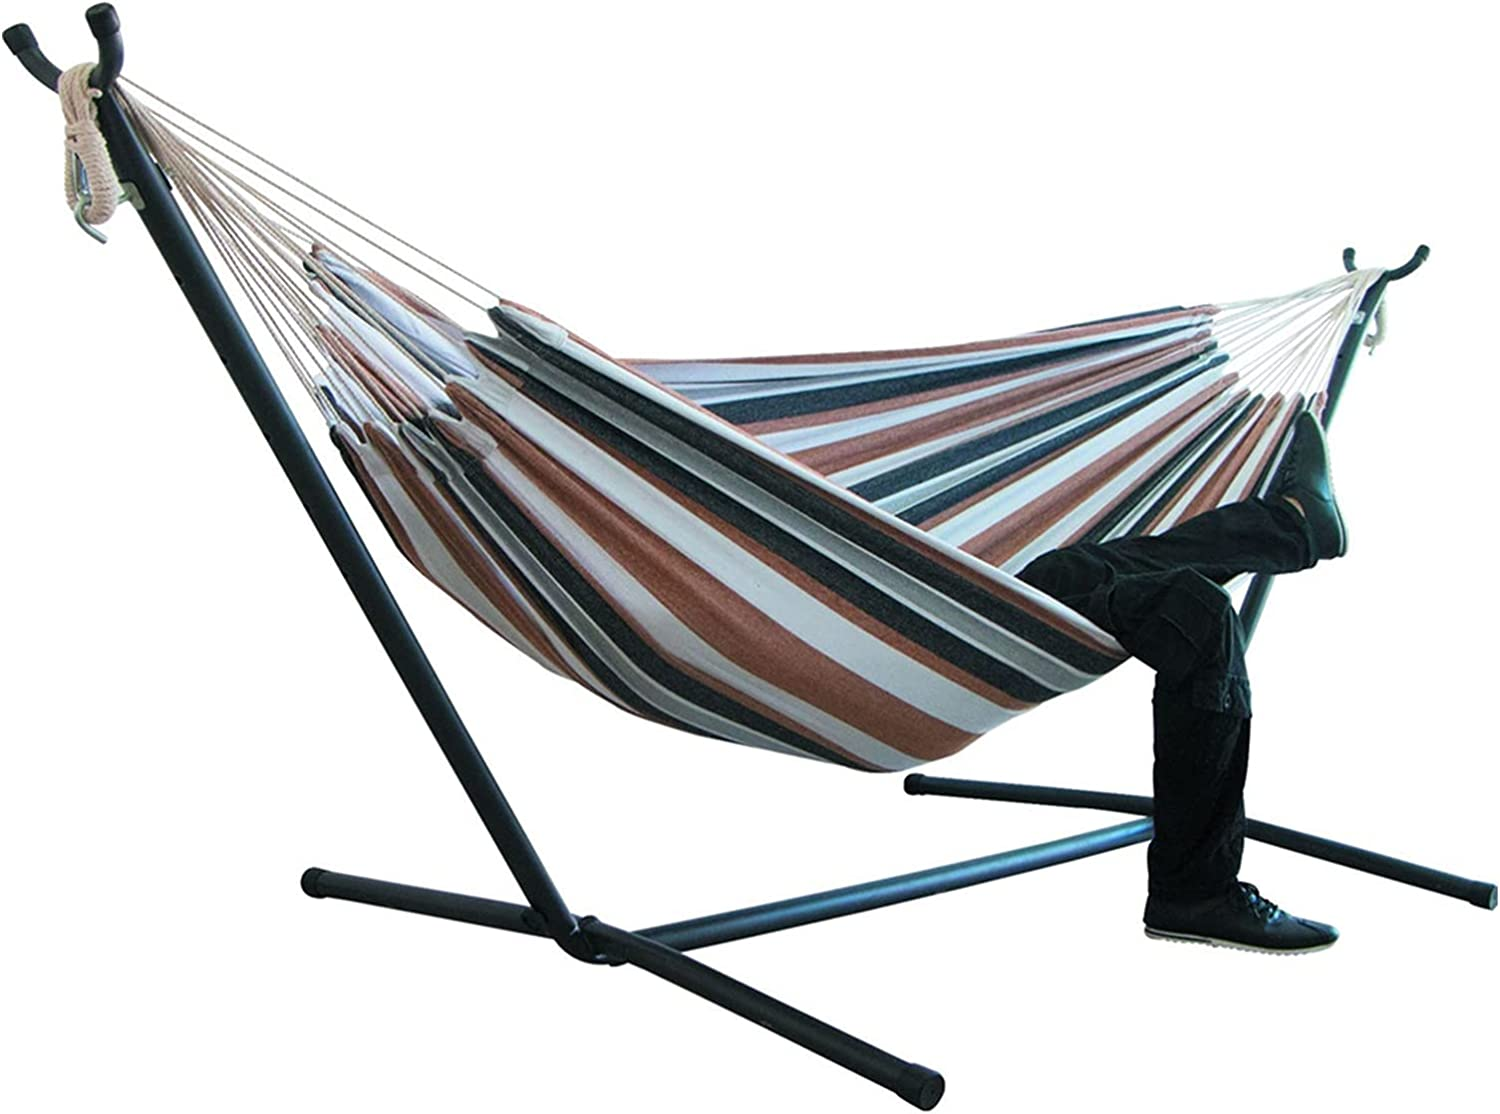 ppqq Very Practical price Two-Person Camping Thicken New life Swinging Hammock